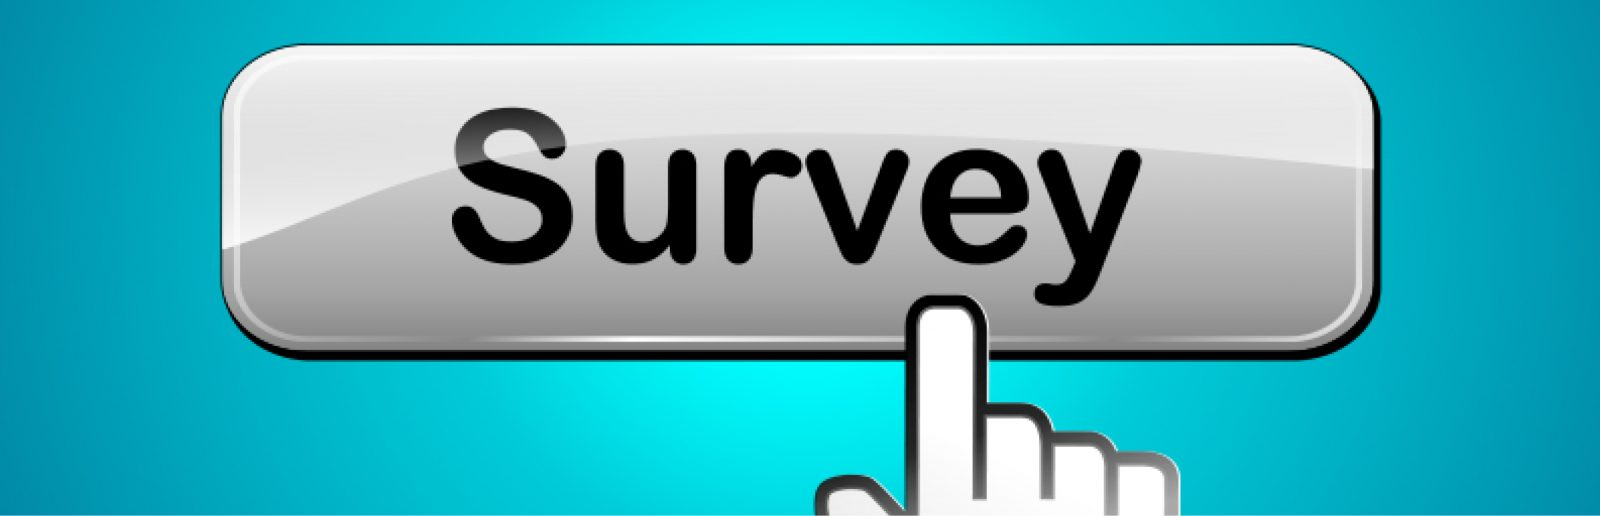 Survey Slider